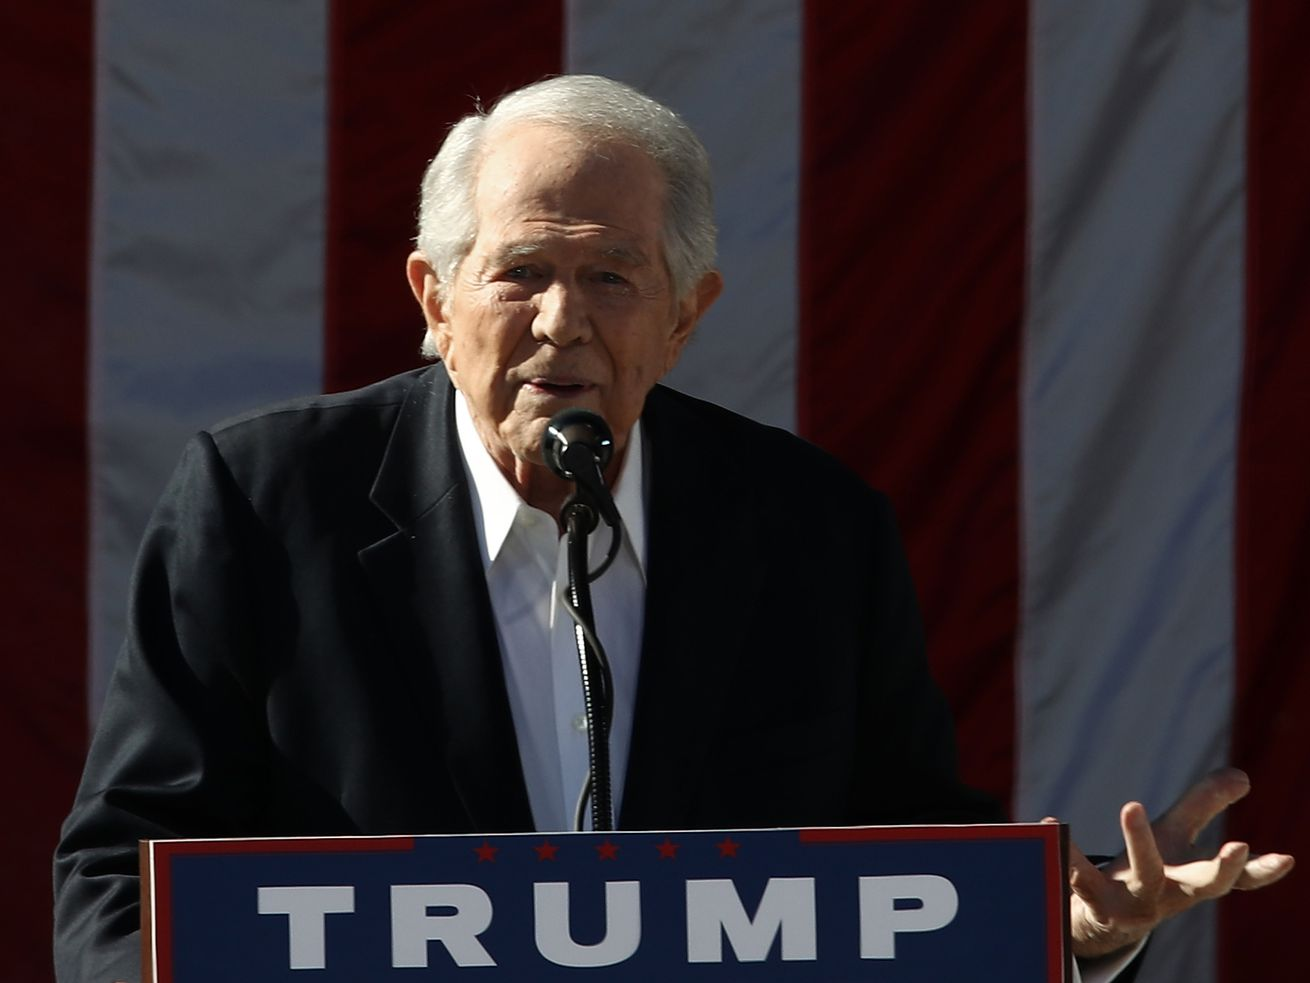 Pat Robertson speaks at a Trump rally at Regent University, where Robertson is chancellor